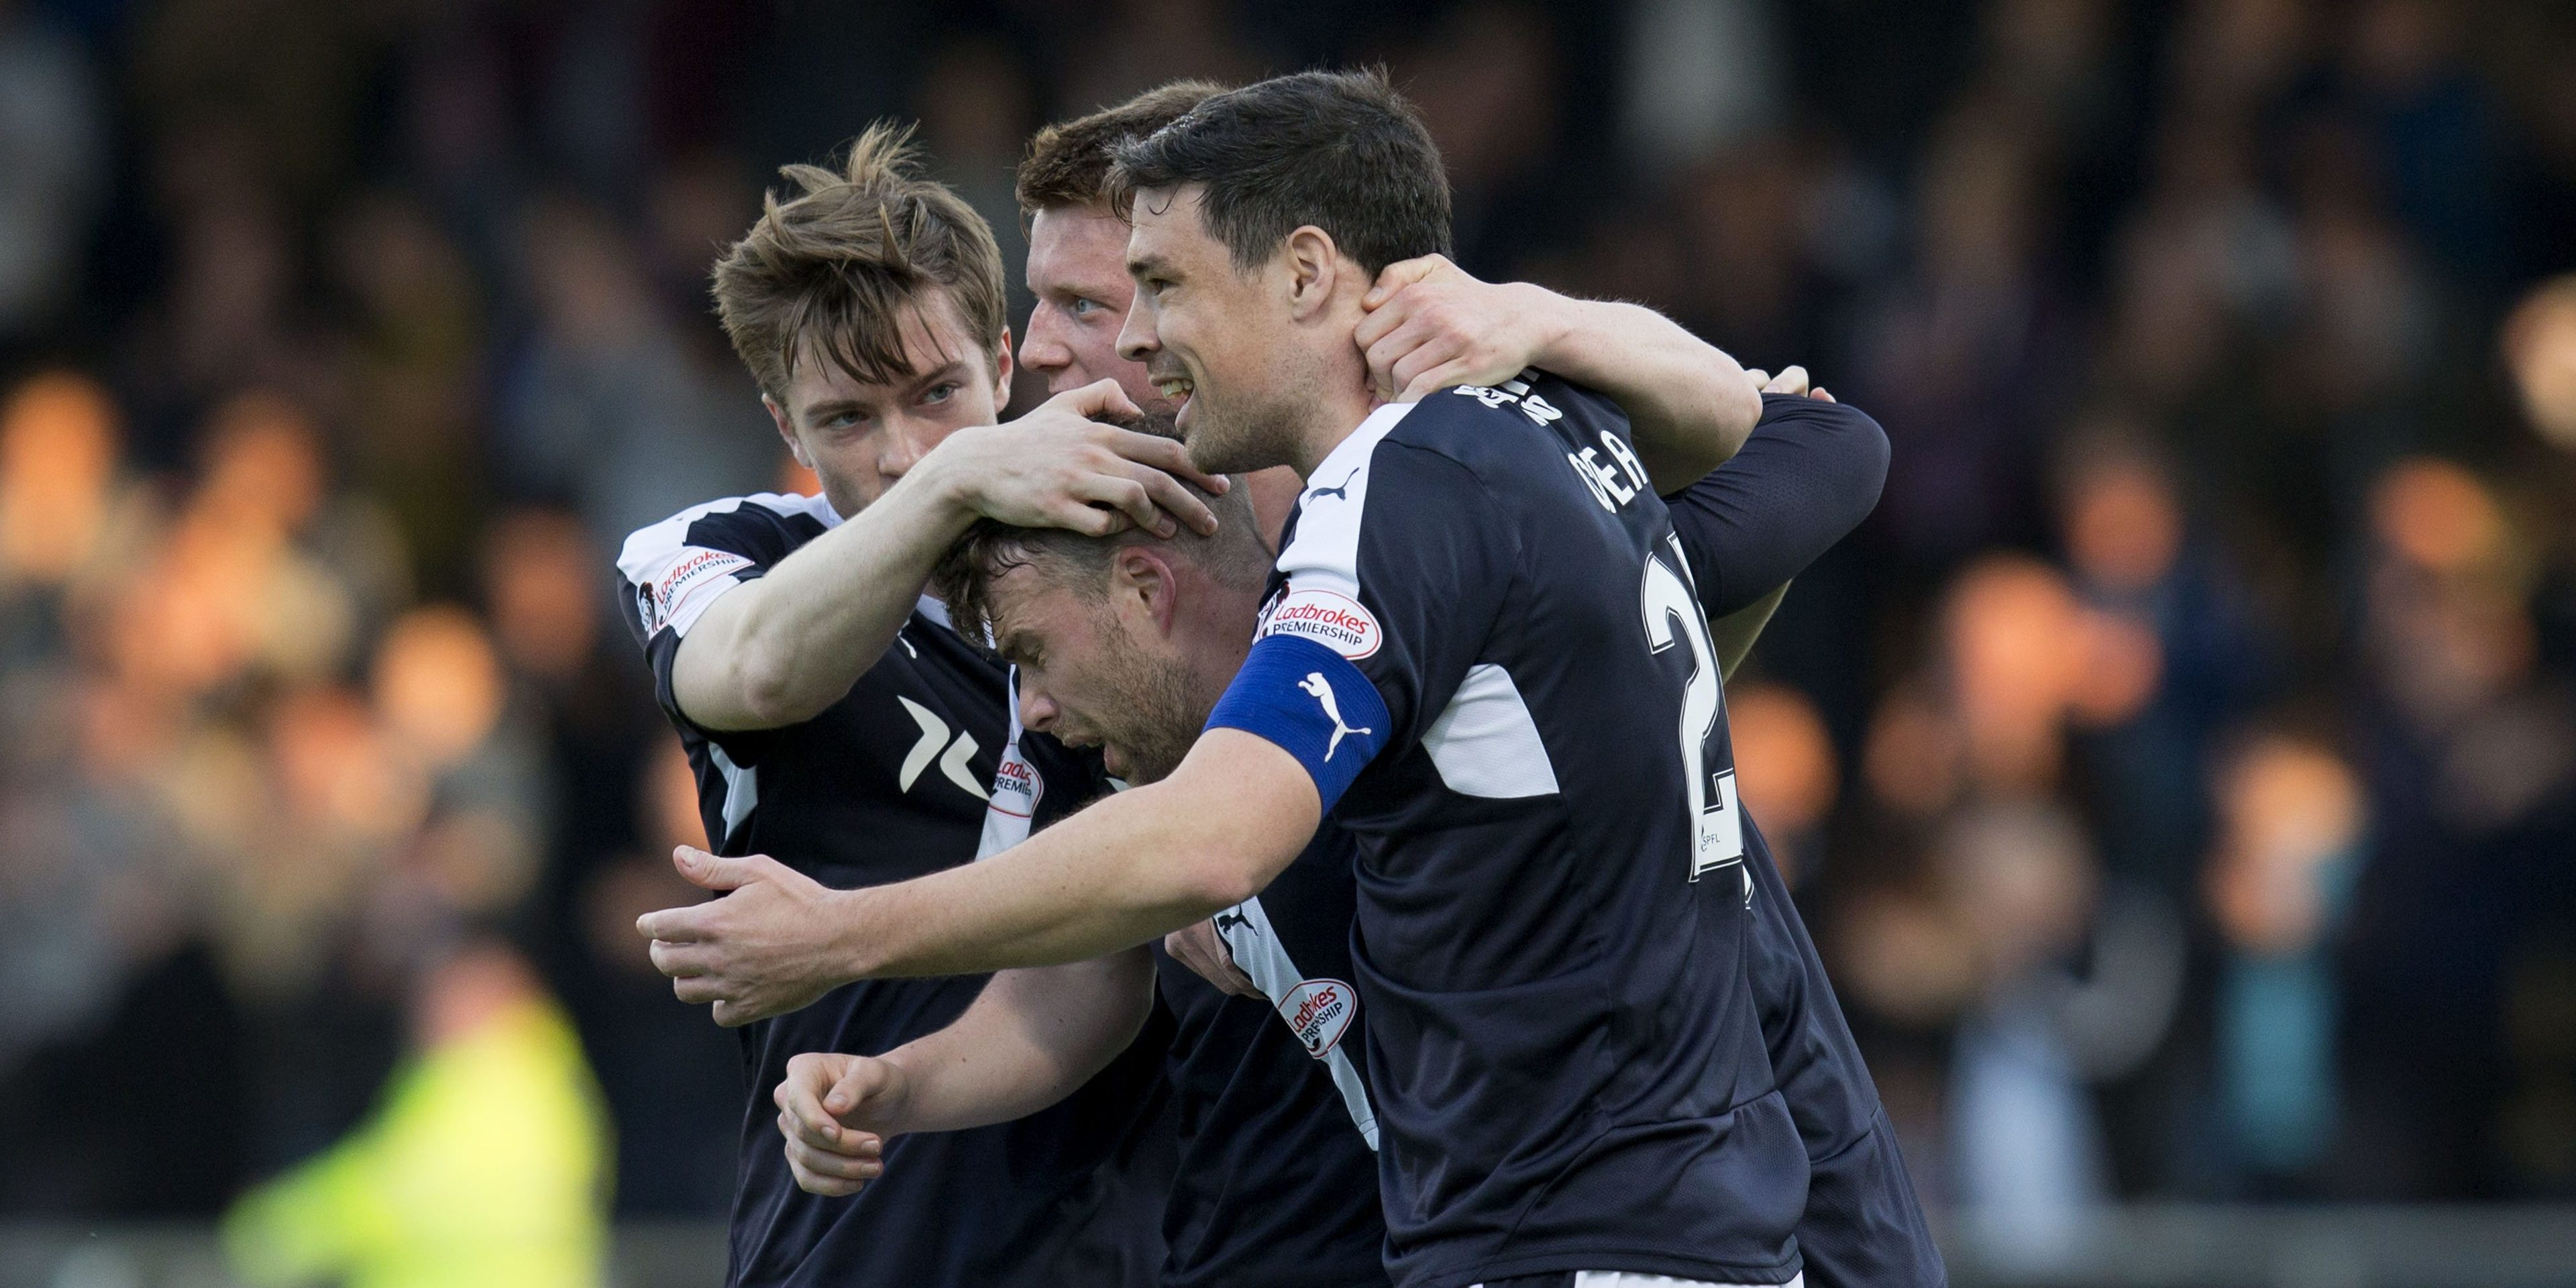 The Dundee players celebrate Rory Loys goal.